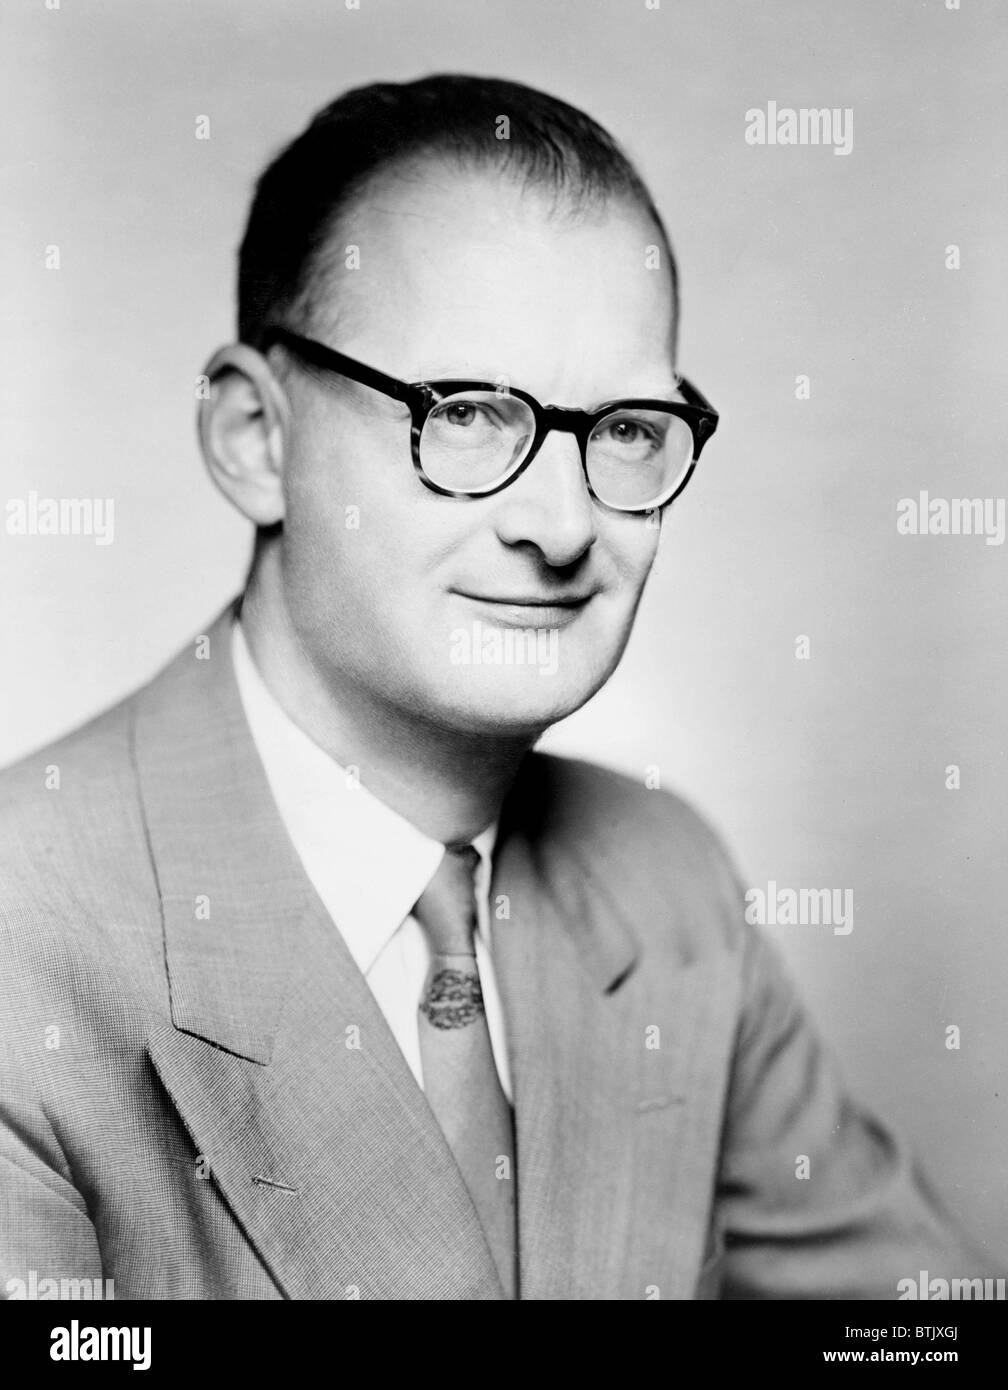 Arthur C. Clarke (born 1917), English writer of both science and science fiction, best known for his short story - Stock Image